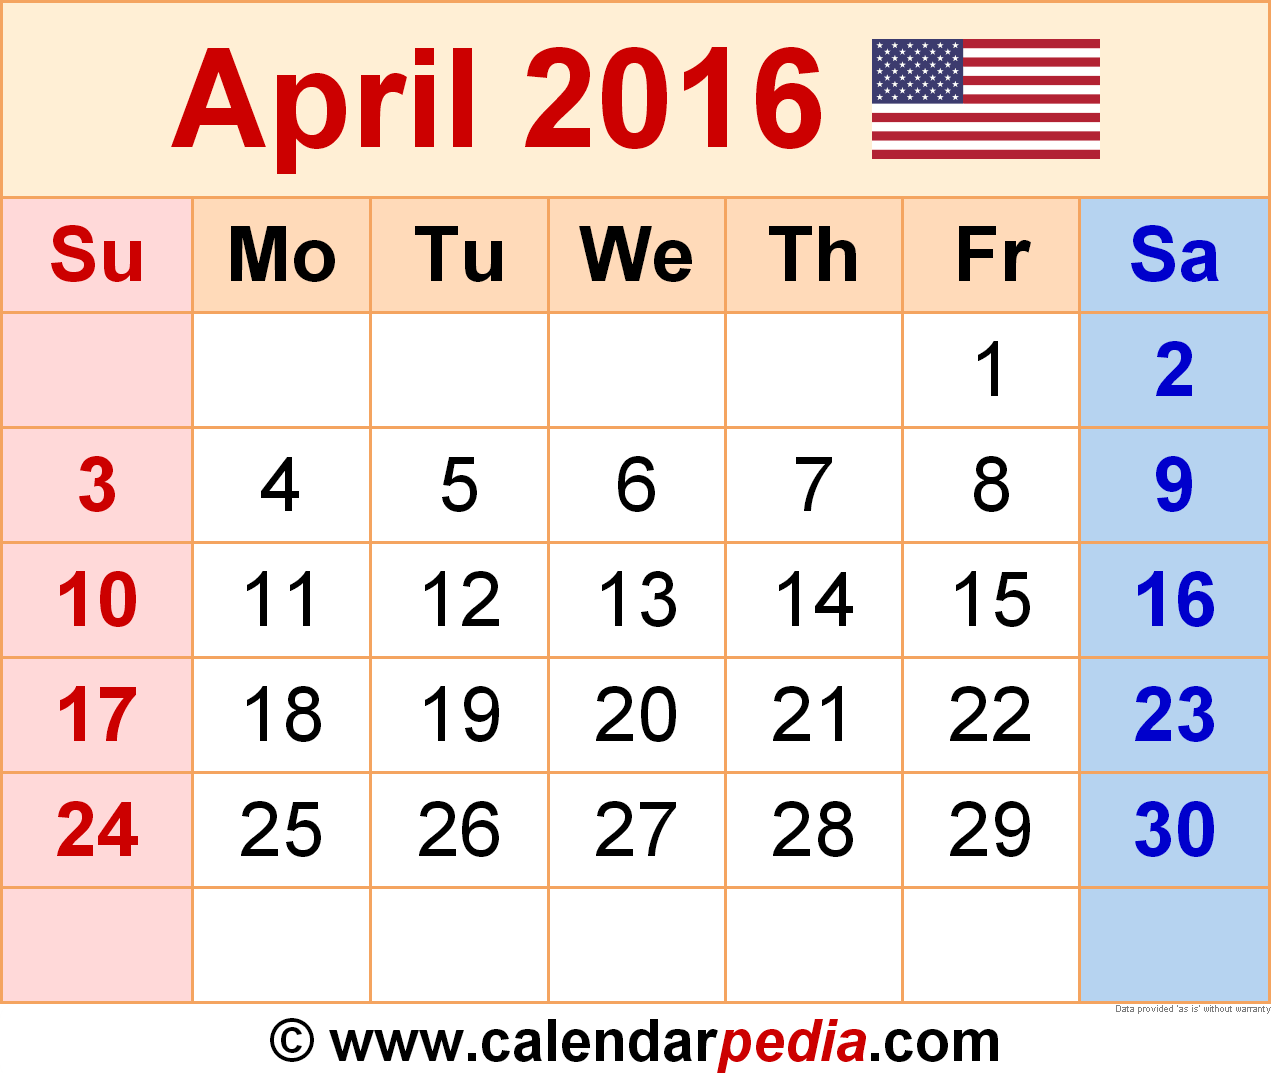 April 2016 calendar clipart. Calendars for word excel